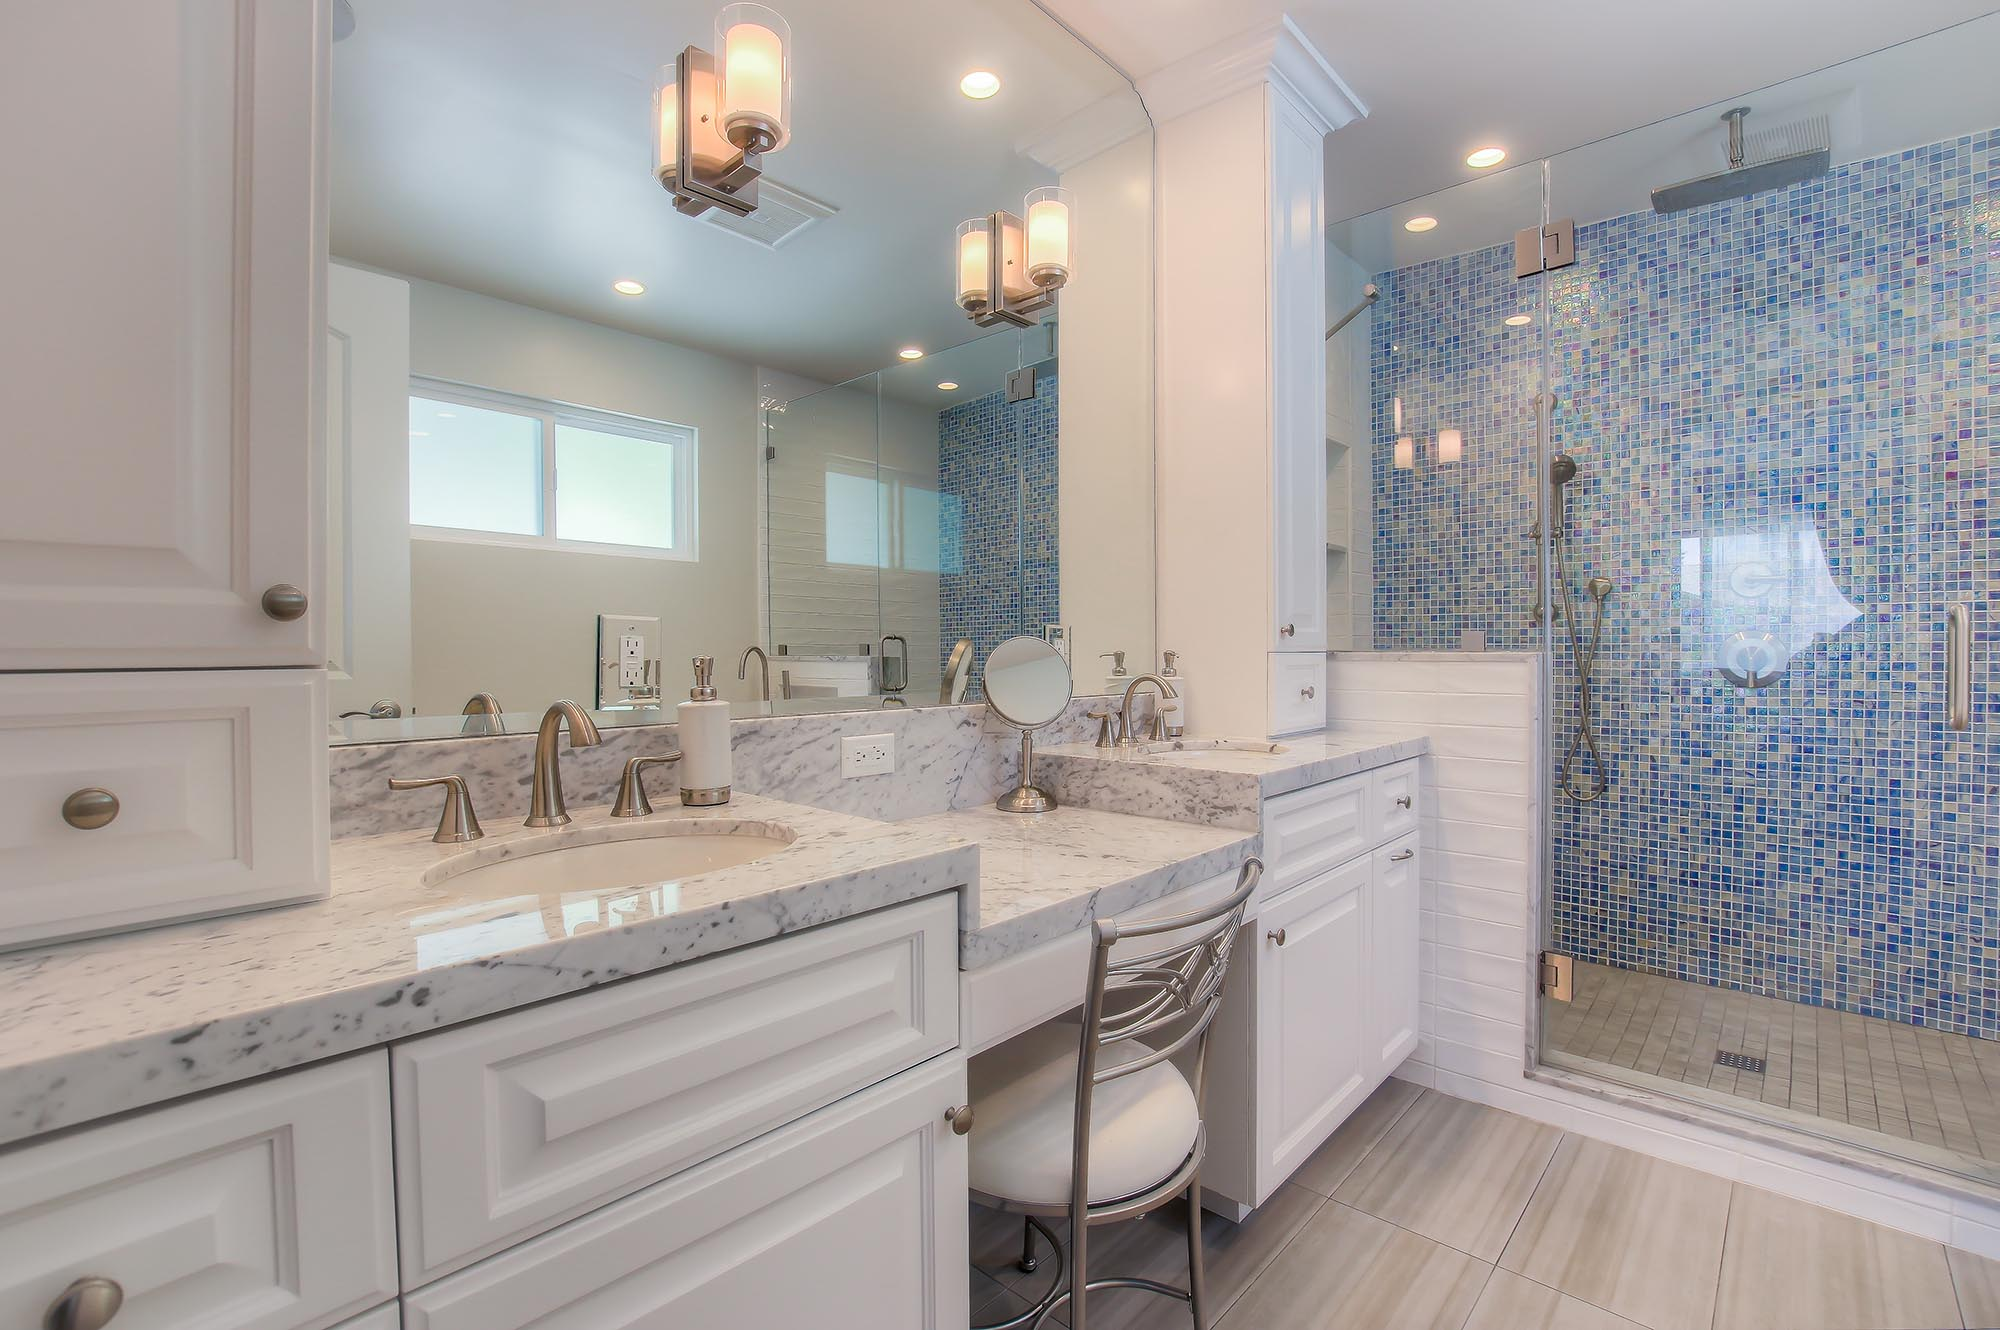 burbank tiles floors and walls opt.jpg